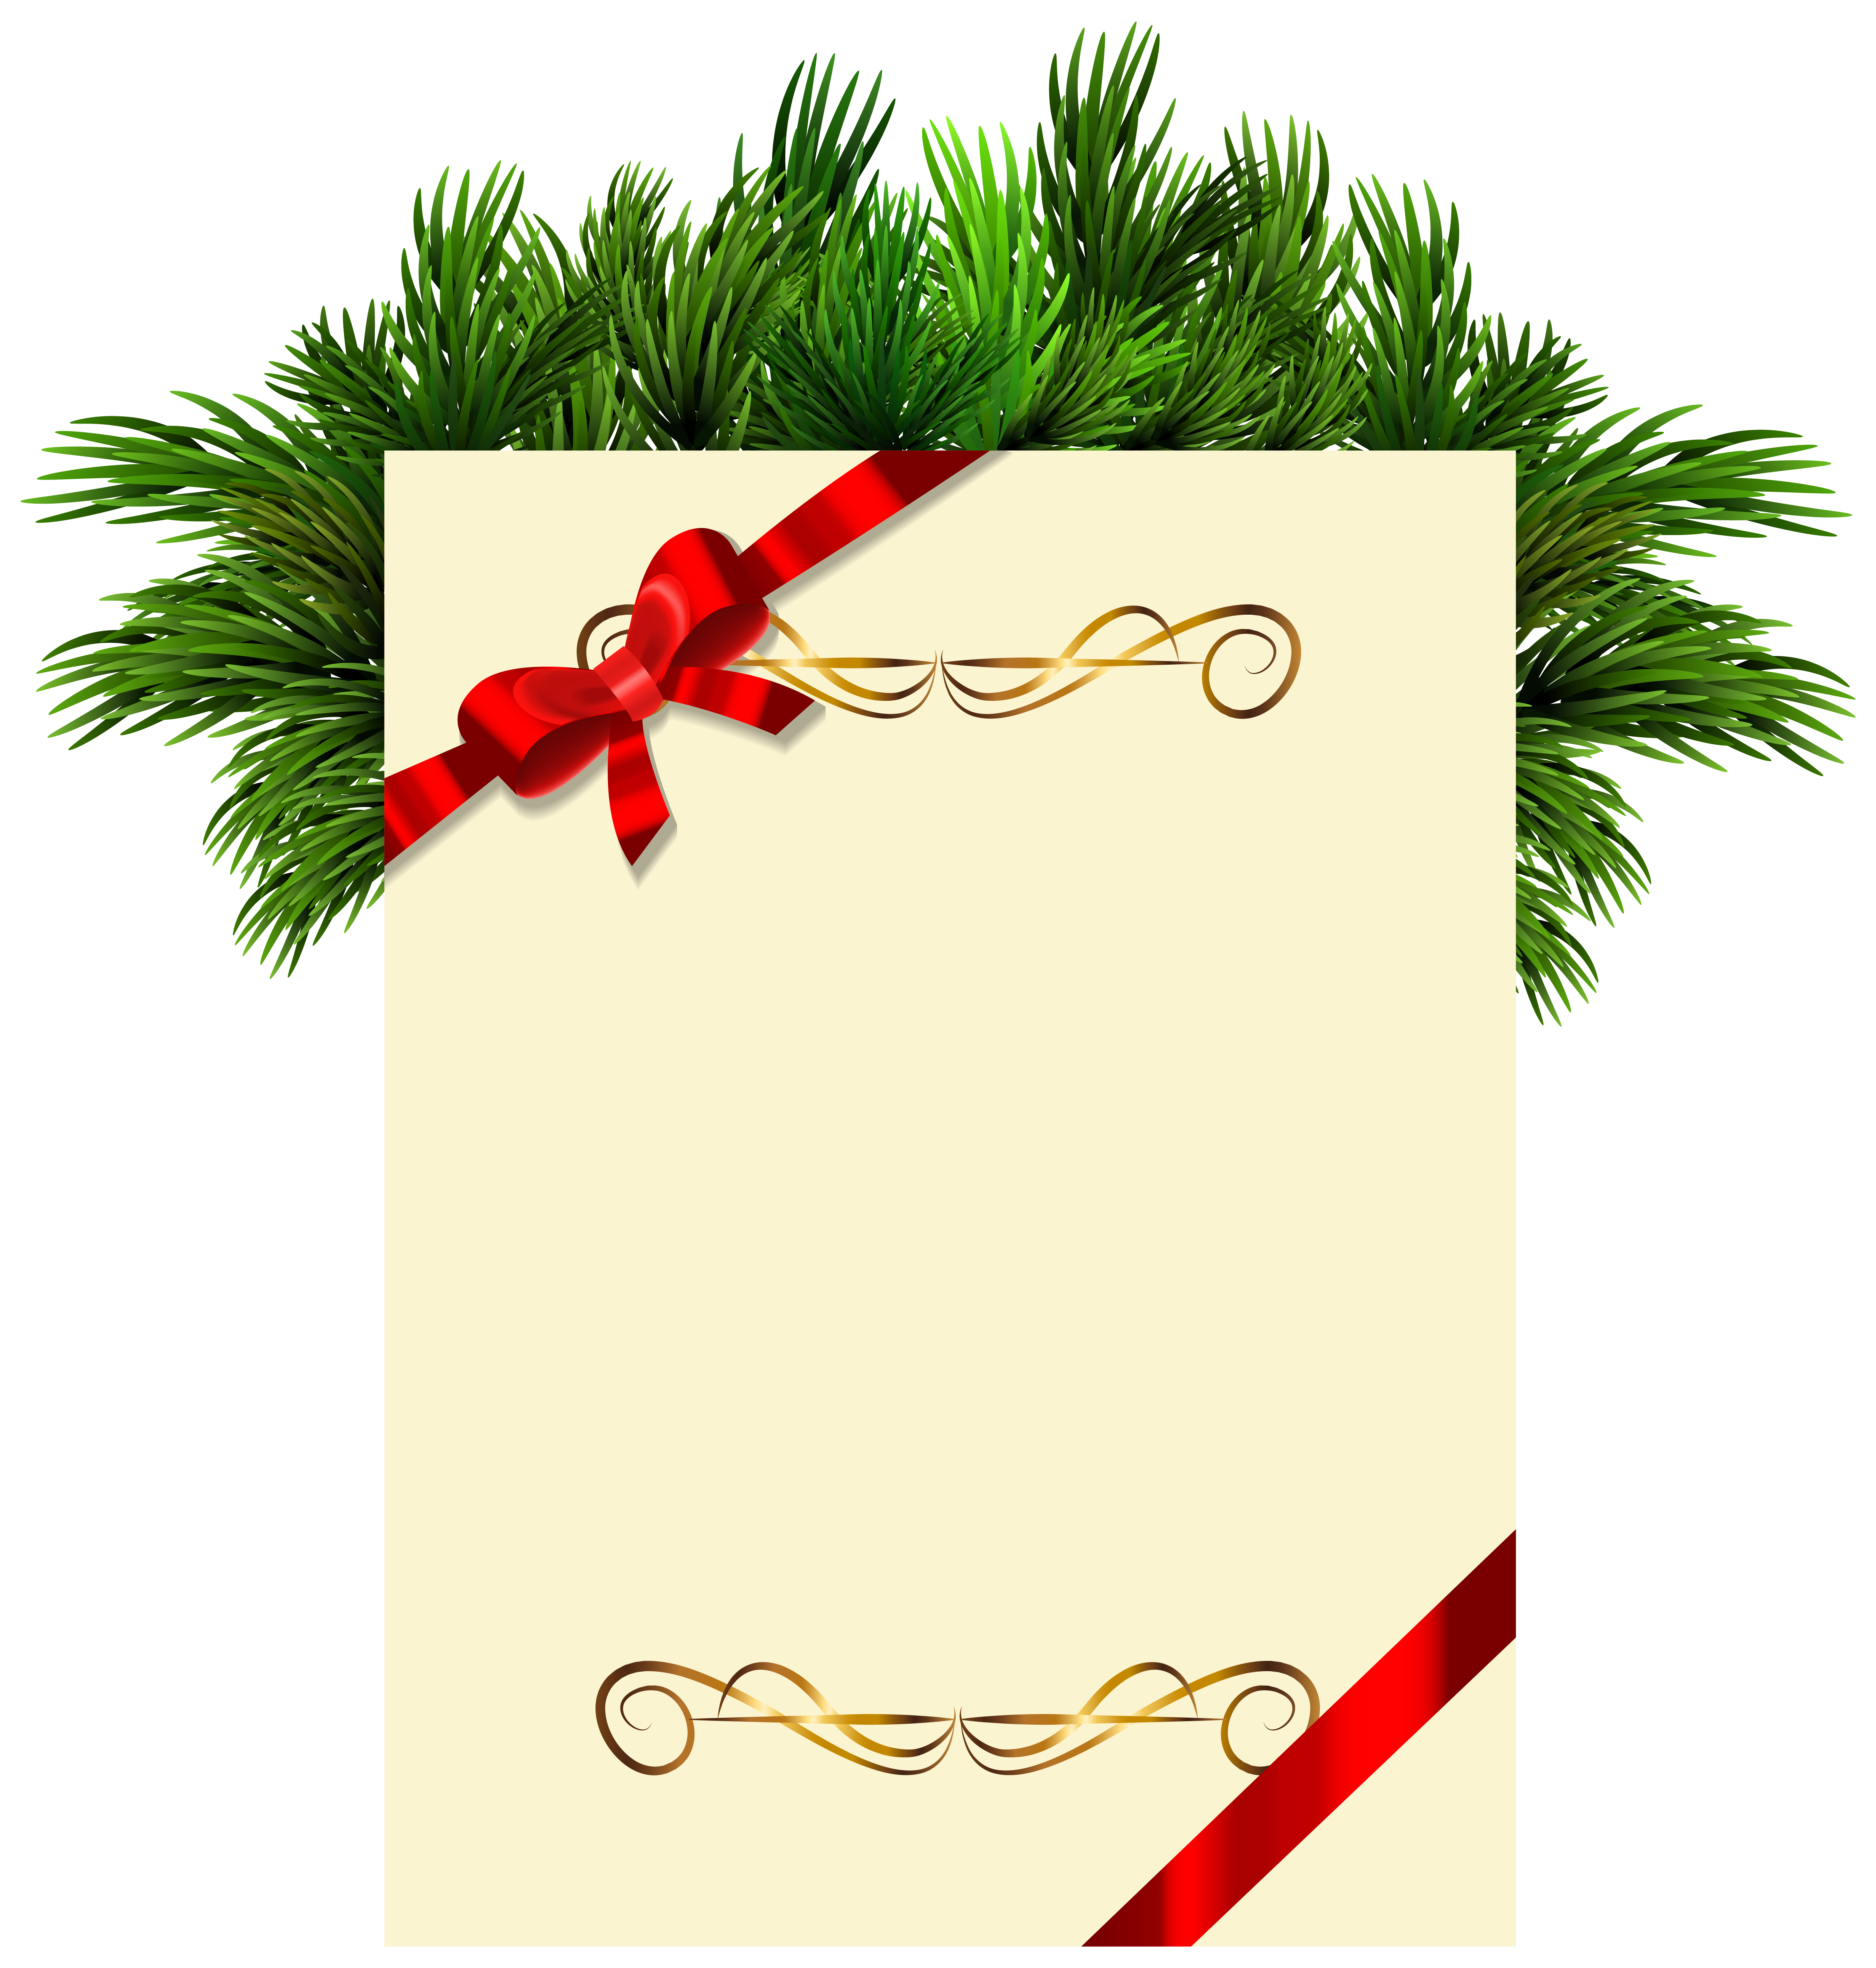 Picture Branches Claus Pine Invitation Santa Blank PNG Image